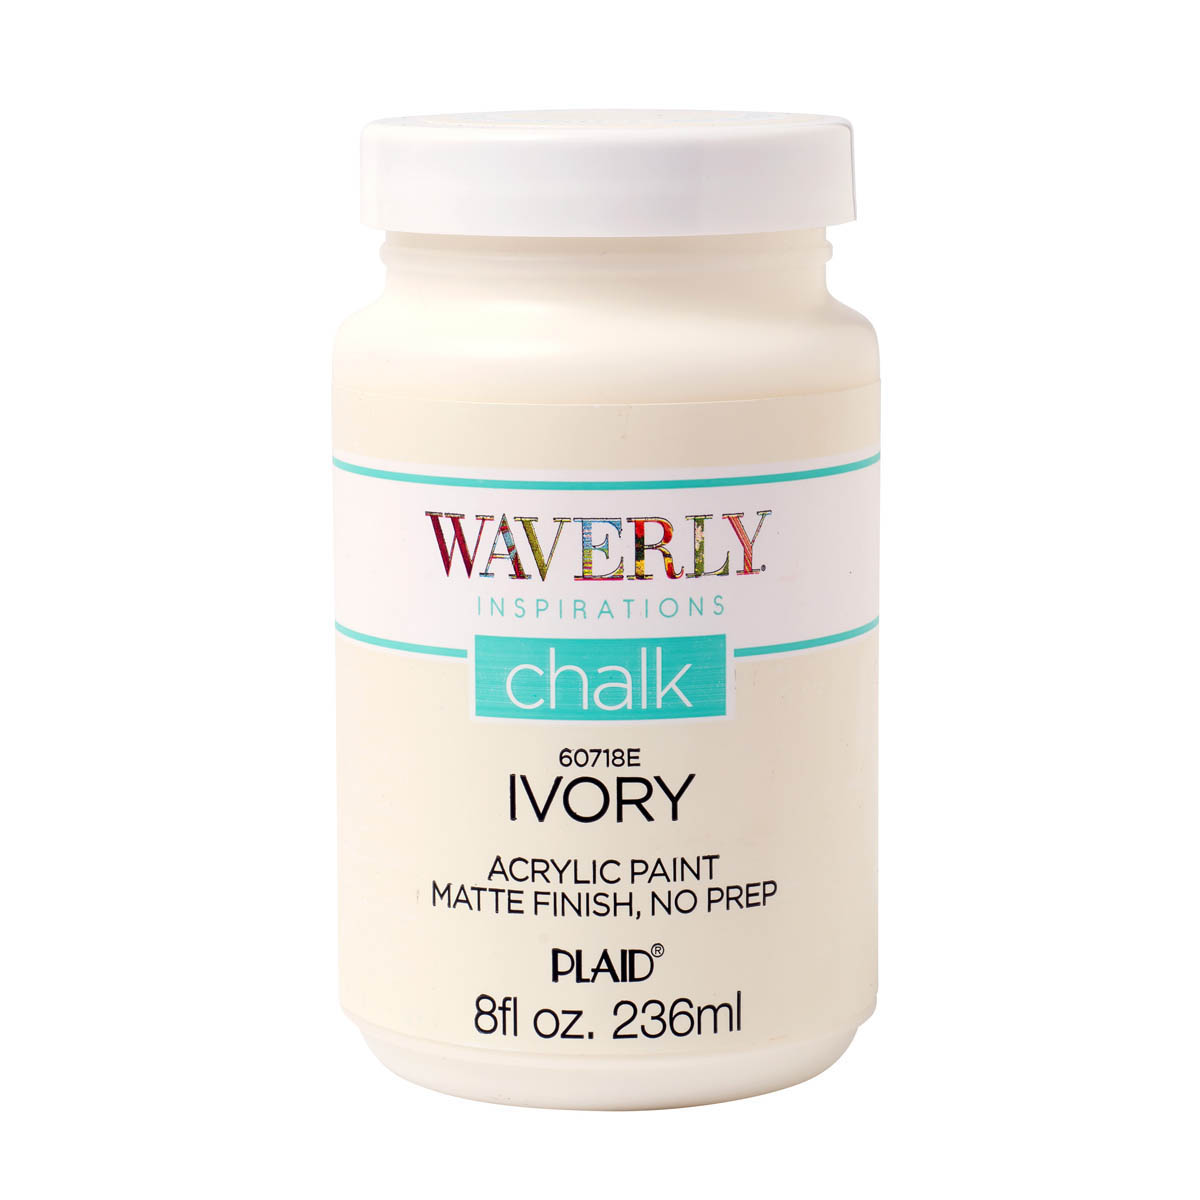 Waverly ® Inspirations Chalk Acrylic Paint - Ivory, 8 oz. - 60718E